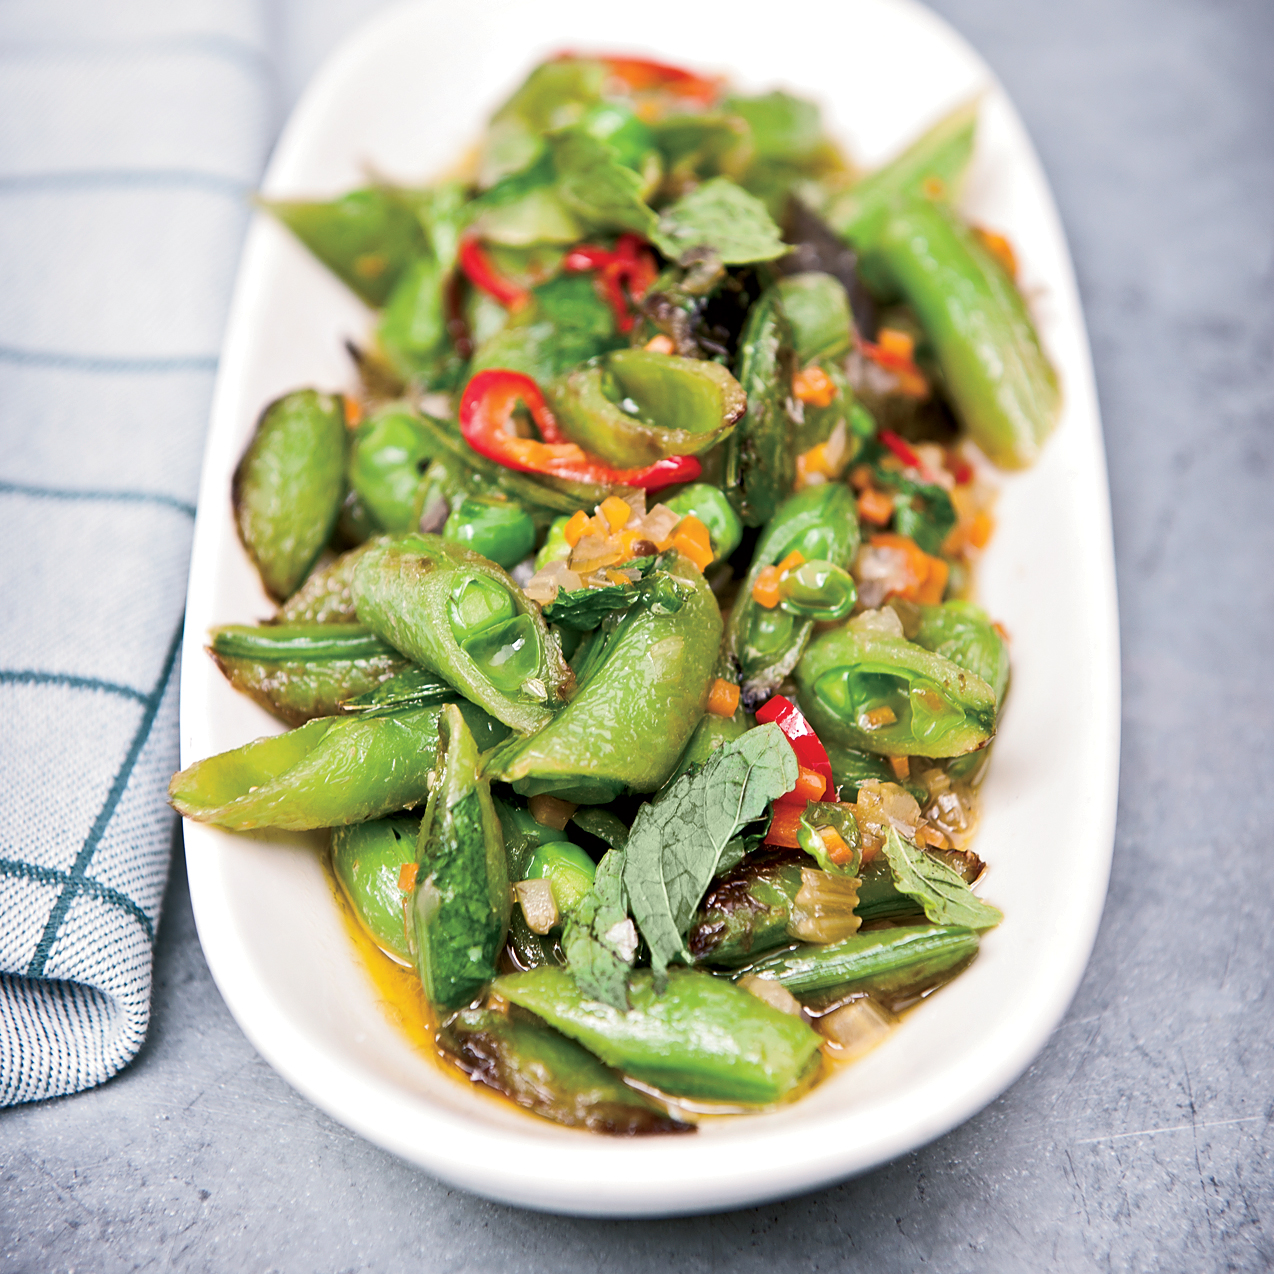 Fast Side Dish Recipes like Sugar Snap Peas with Soffrito, Hot Pepper and Mint